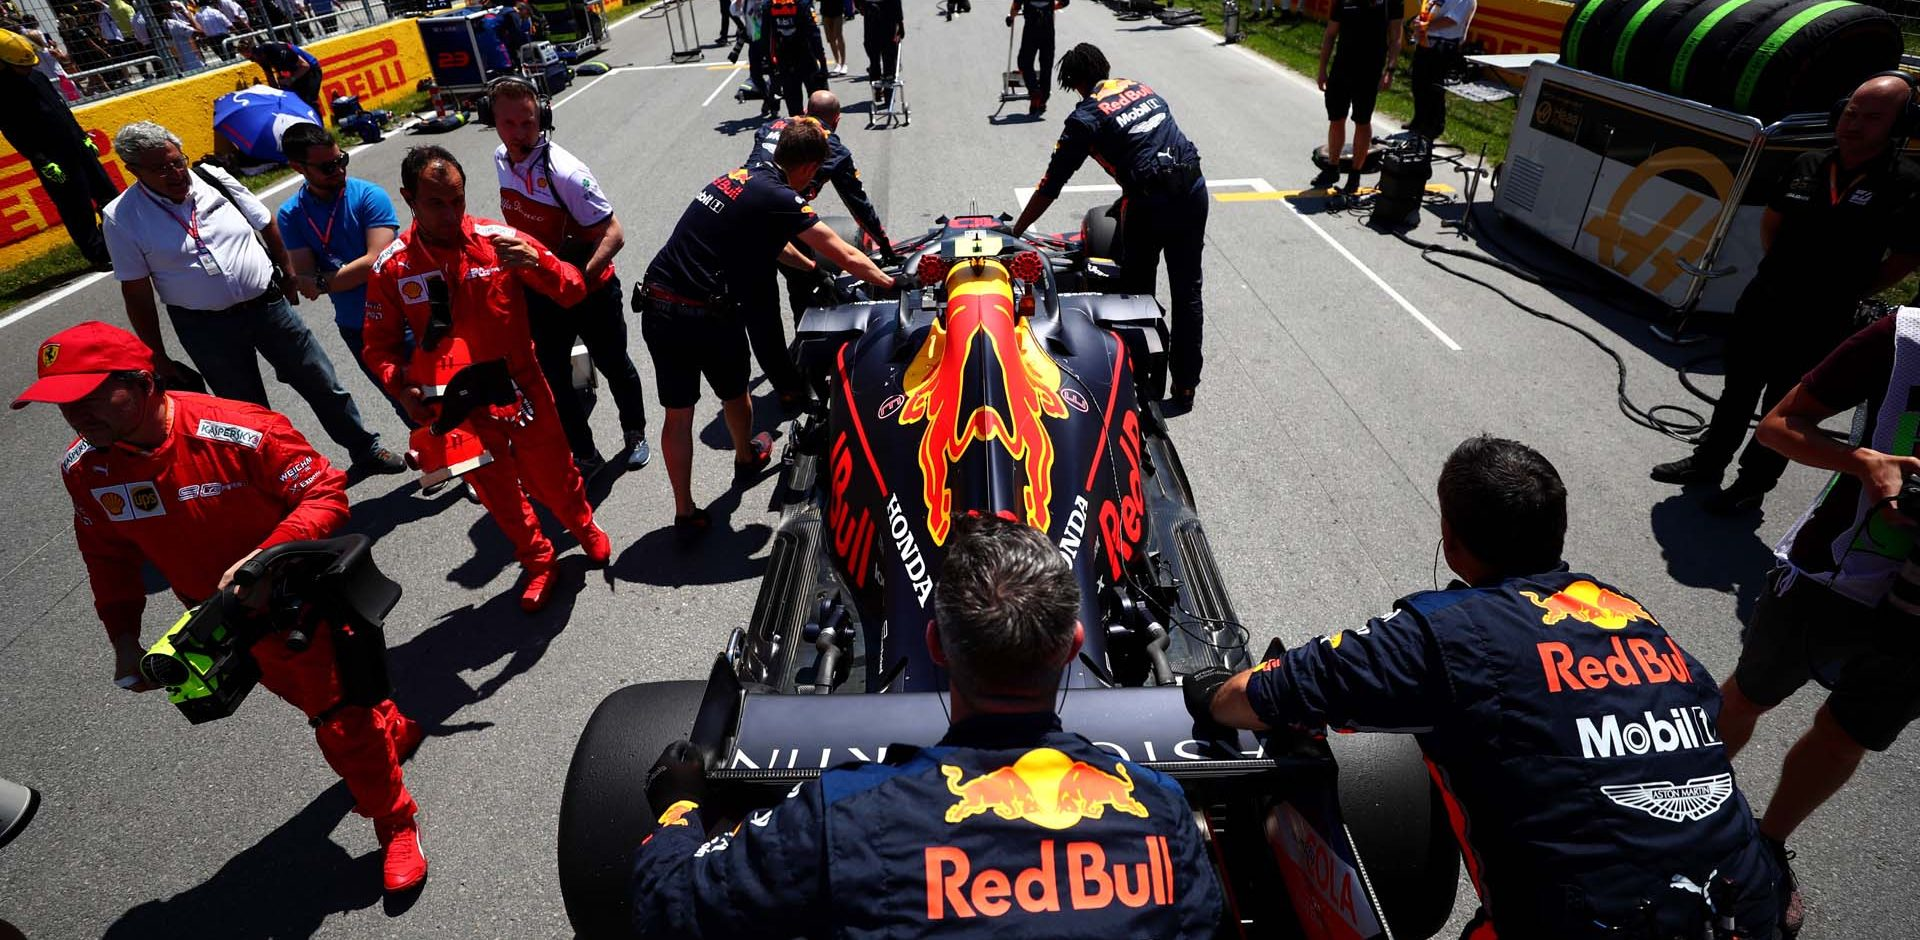 MONTREAL, QC - JUNE 09:  Pierre Gasly of France and Red Bull Racing is pushed to his grid position by members of the team during the F1 Grand Prix of Canada at Circuit Gilles Villeneuve on June 9, 2019 in Montreal, Canada.  (Photo by Dan Istitene/Getty Images) // Getty Images / Red Bull Content Pool  // AP-1ZKN94UF92111 // Usage for editorial use only // Please go to www.redbullcontentpool.com for further information. //